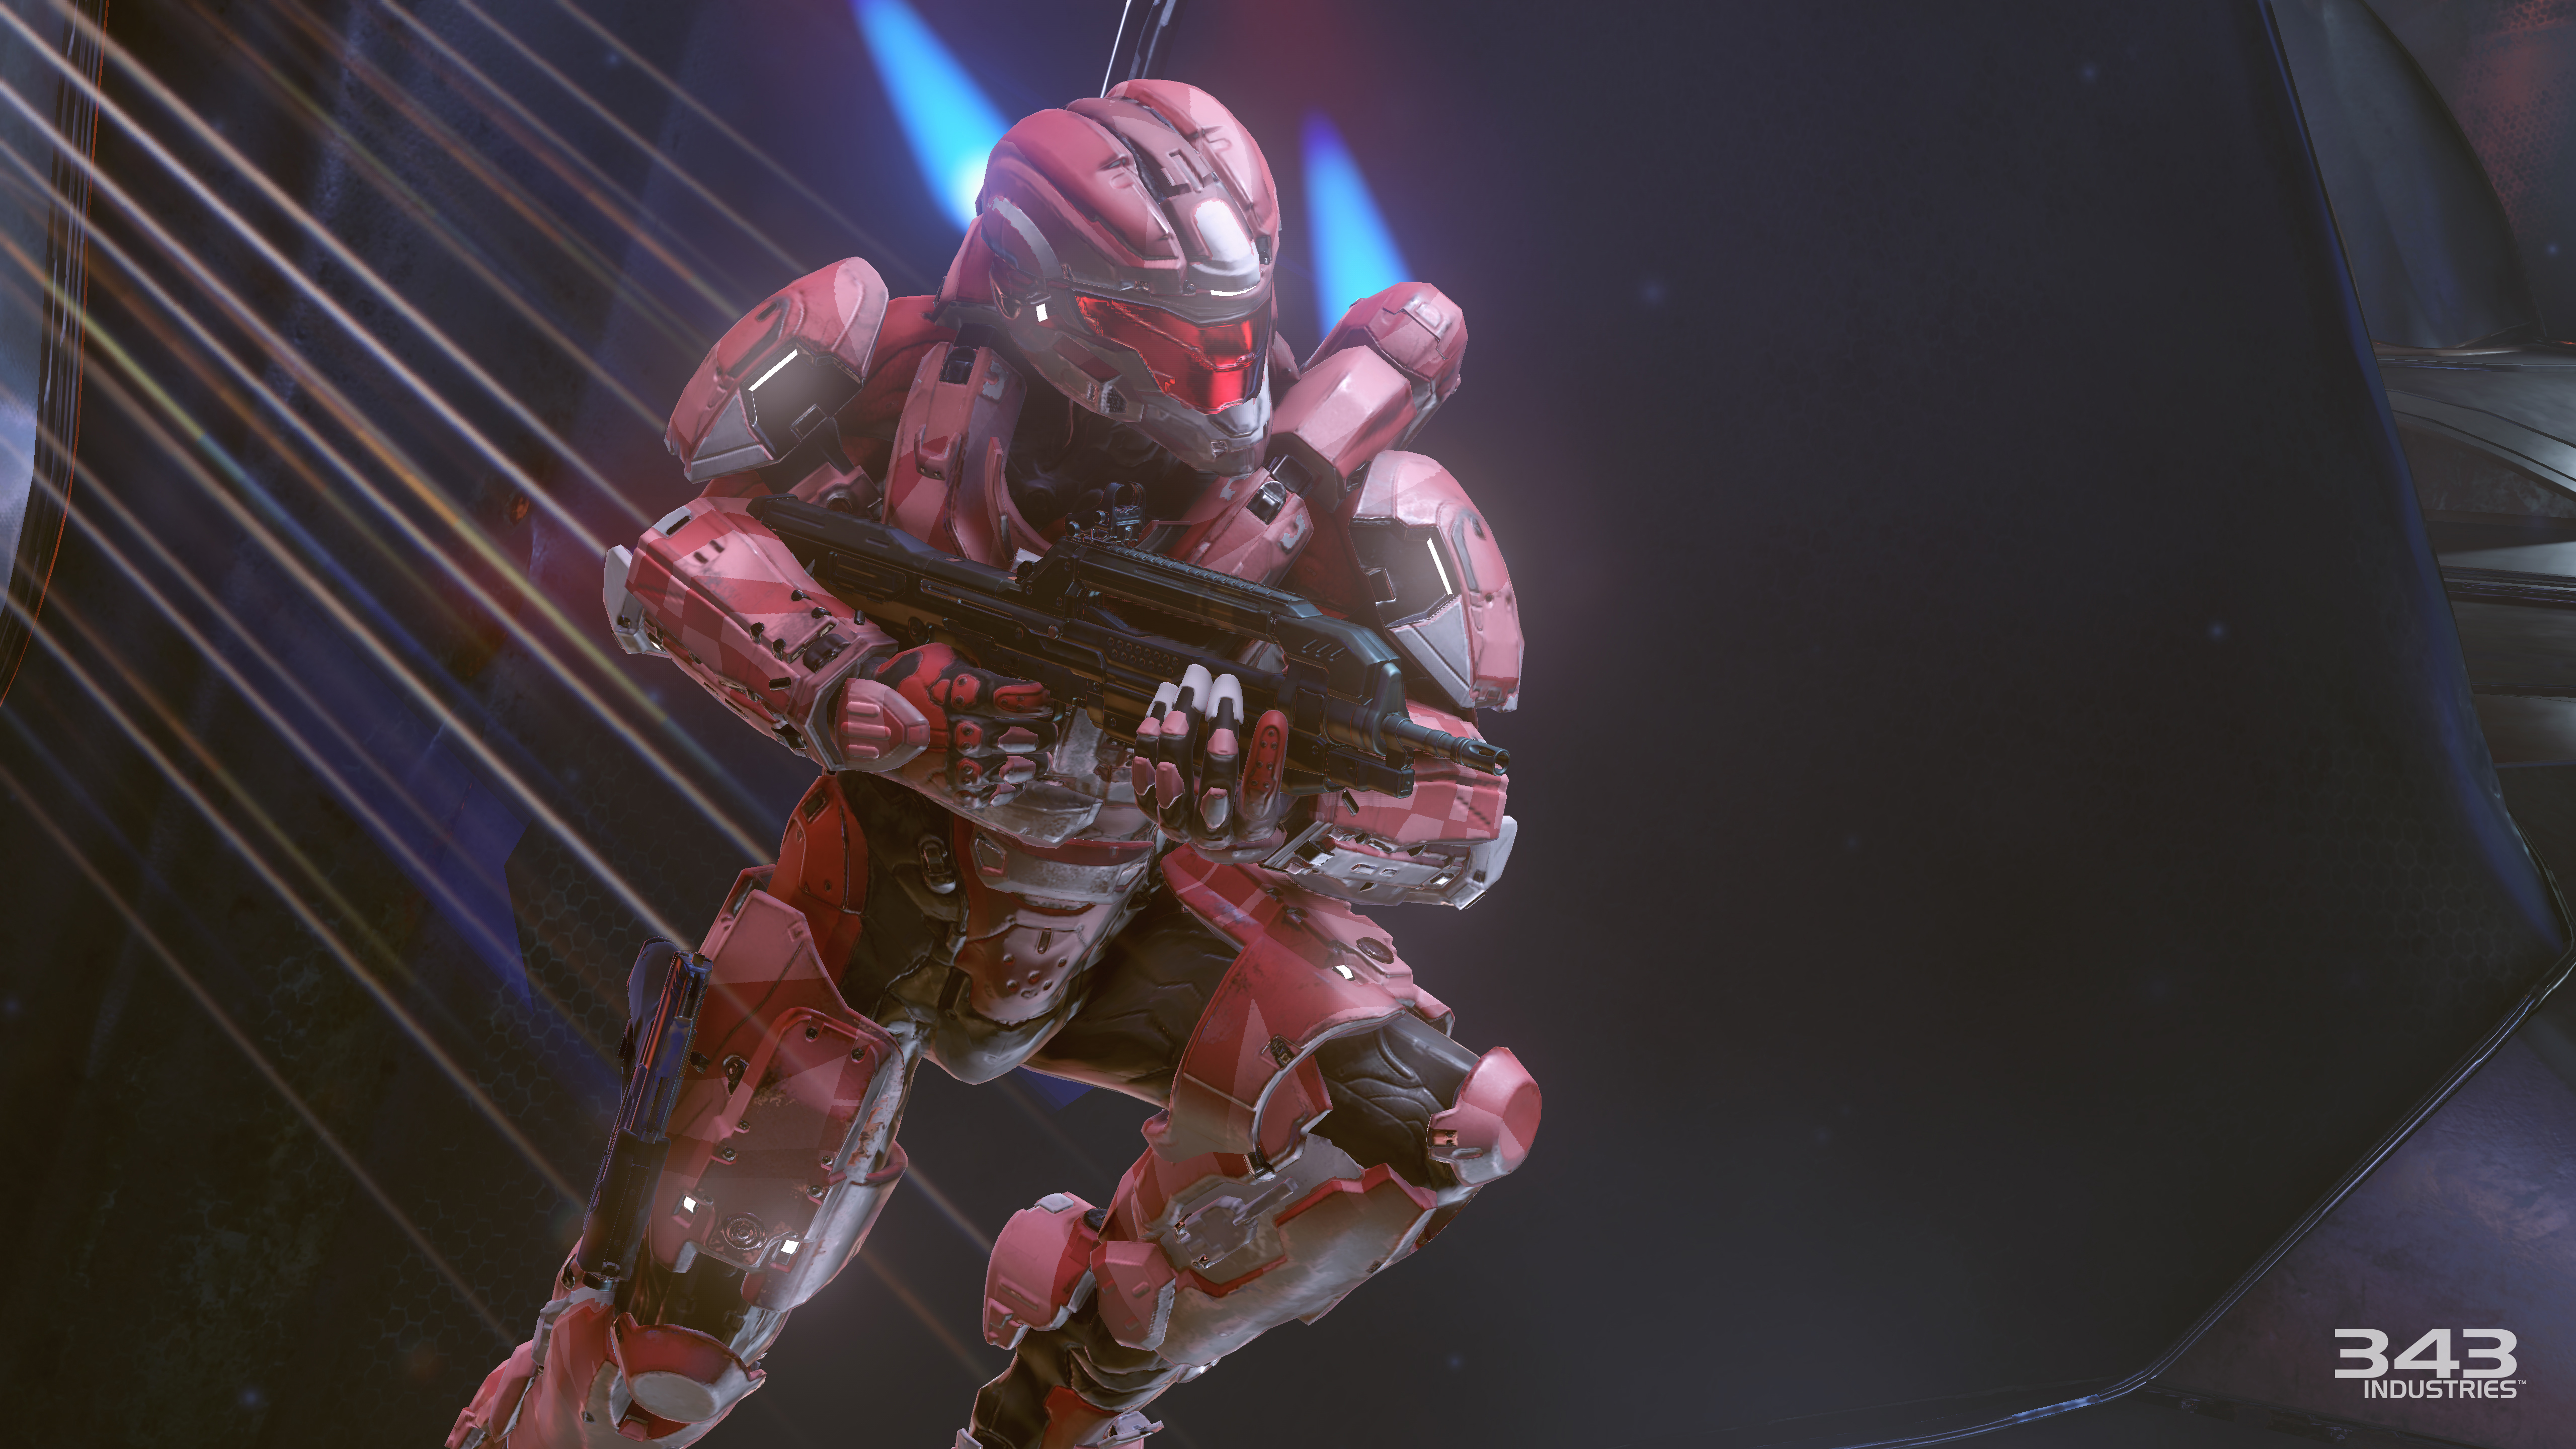 Halo 5: Guardians multiplayer beta: hands-on, videos and interviews